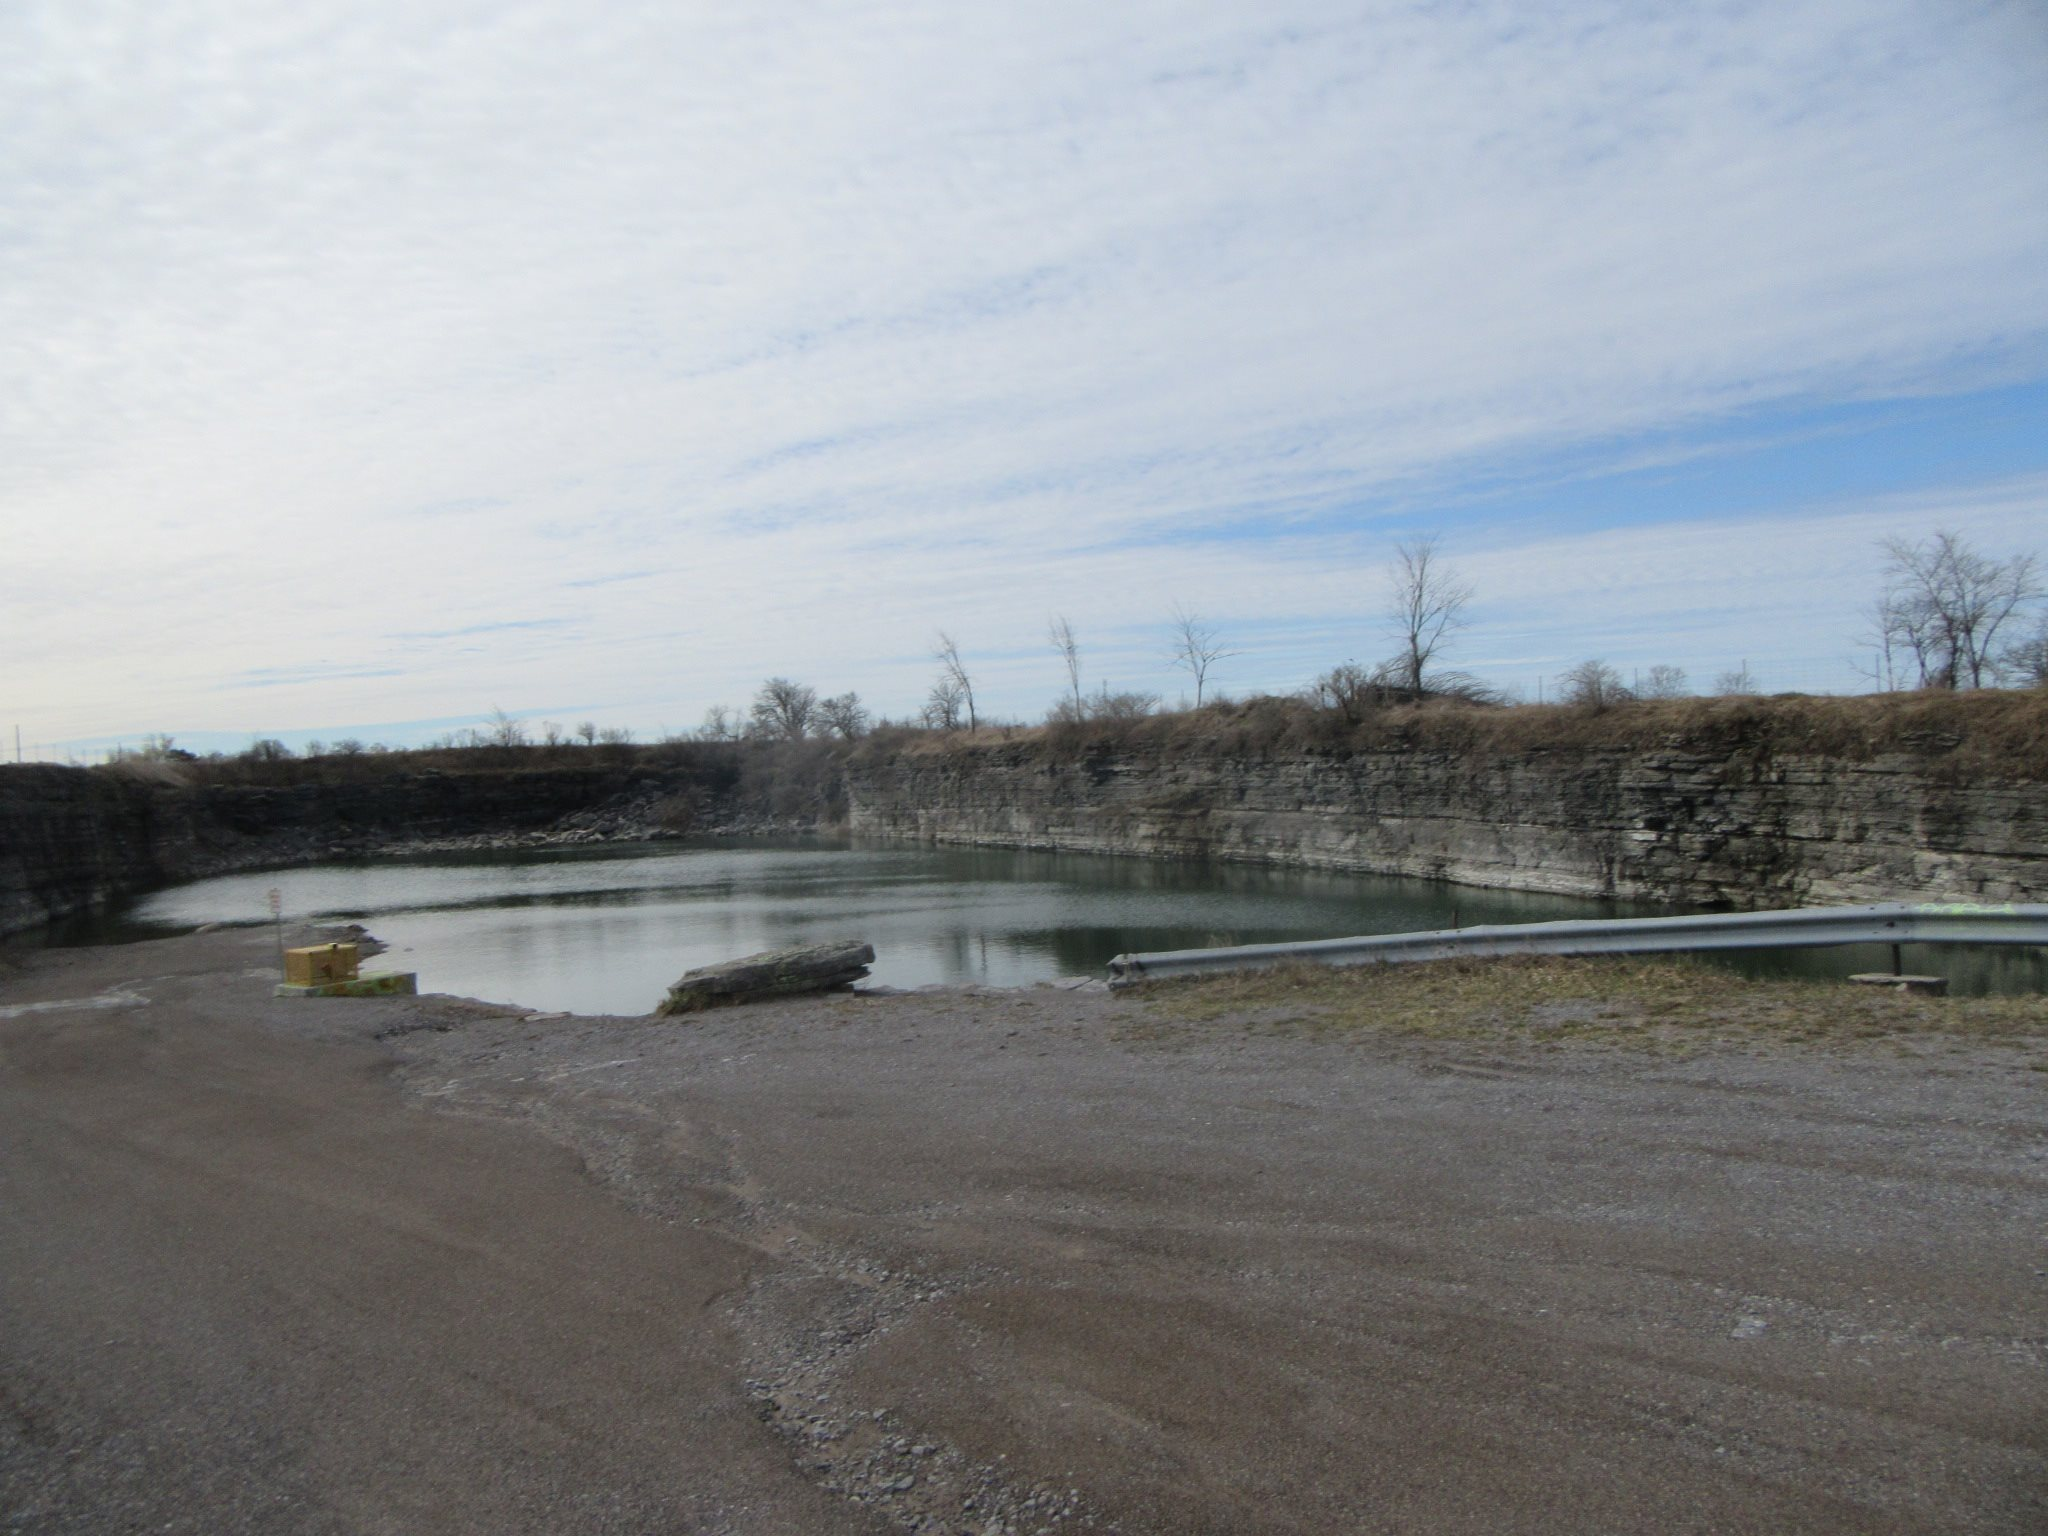 The quarry and swimming hole